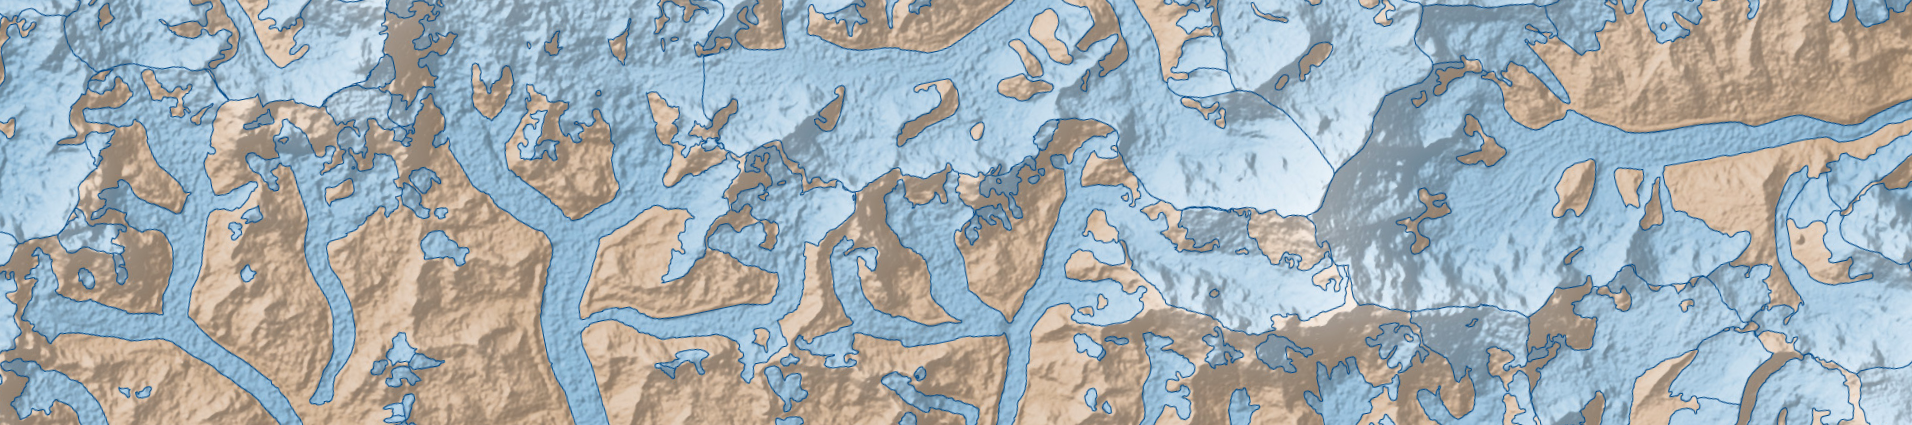 A gentle introduction to gdal part 3 geodesy local map projections glaciers of the everest region nasa earth observatory image by robert simmon using data from aster gumiabroncs Choice Image